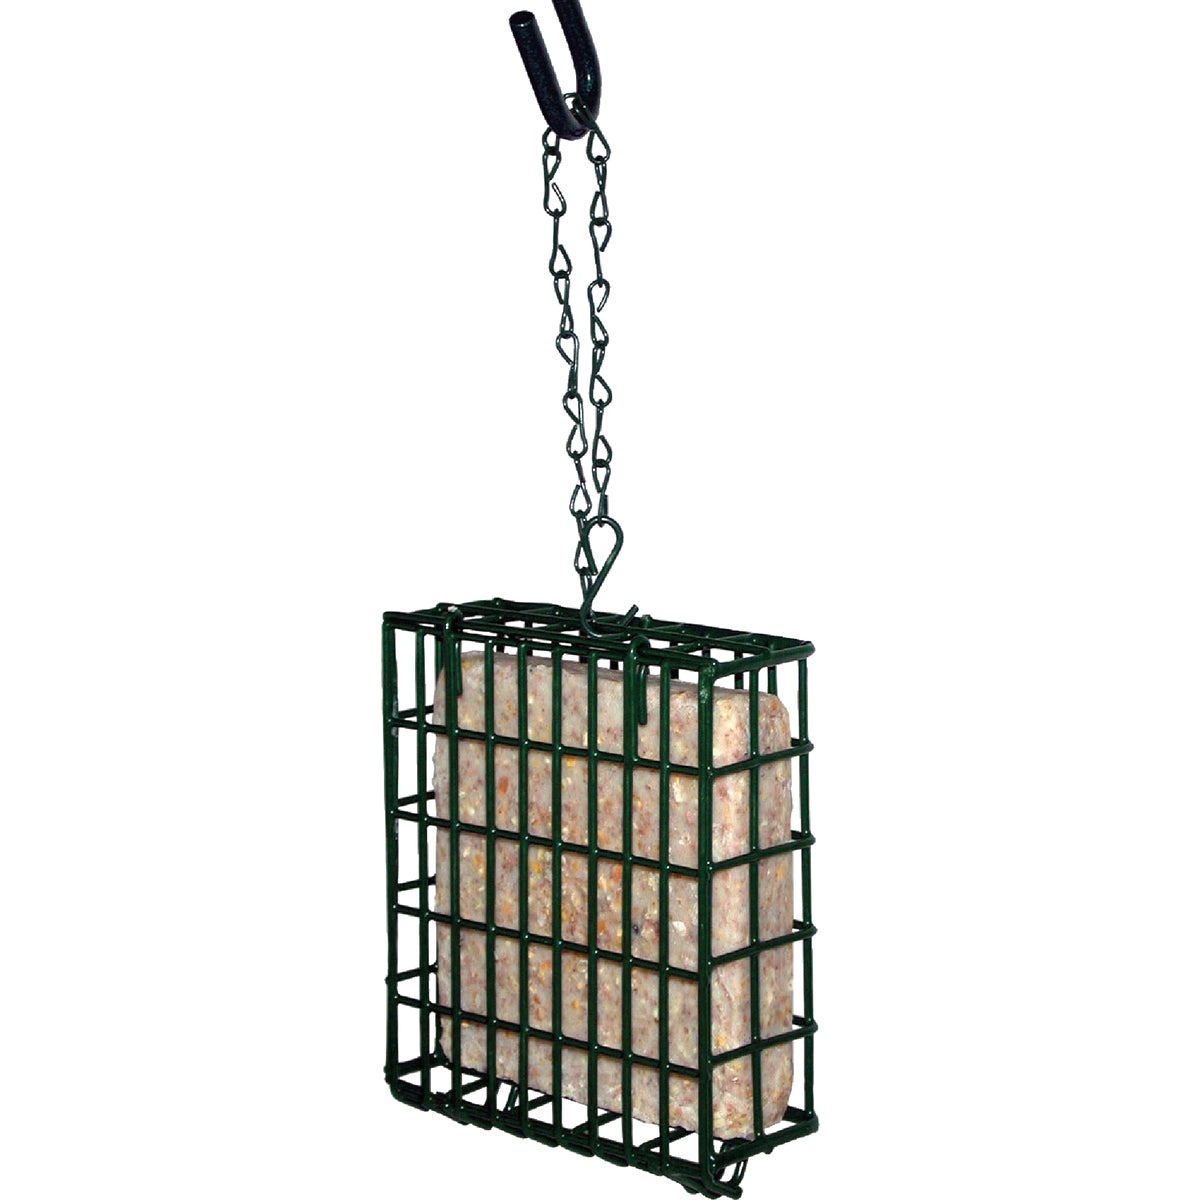 SUET FEEDER - 38092 by Hiatt Mfg